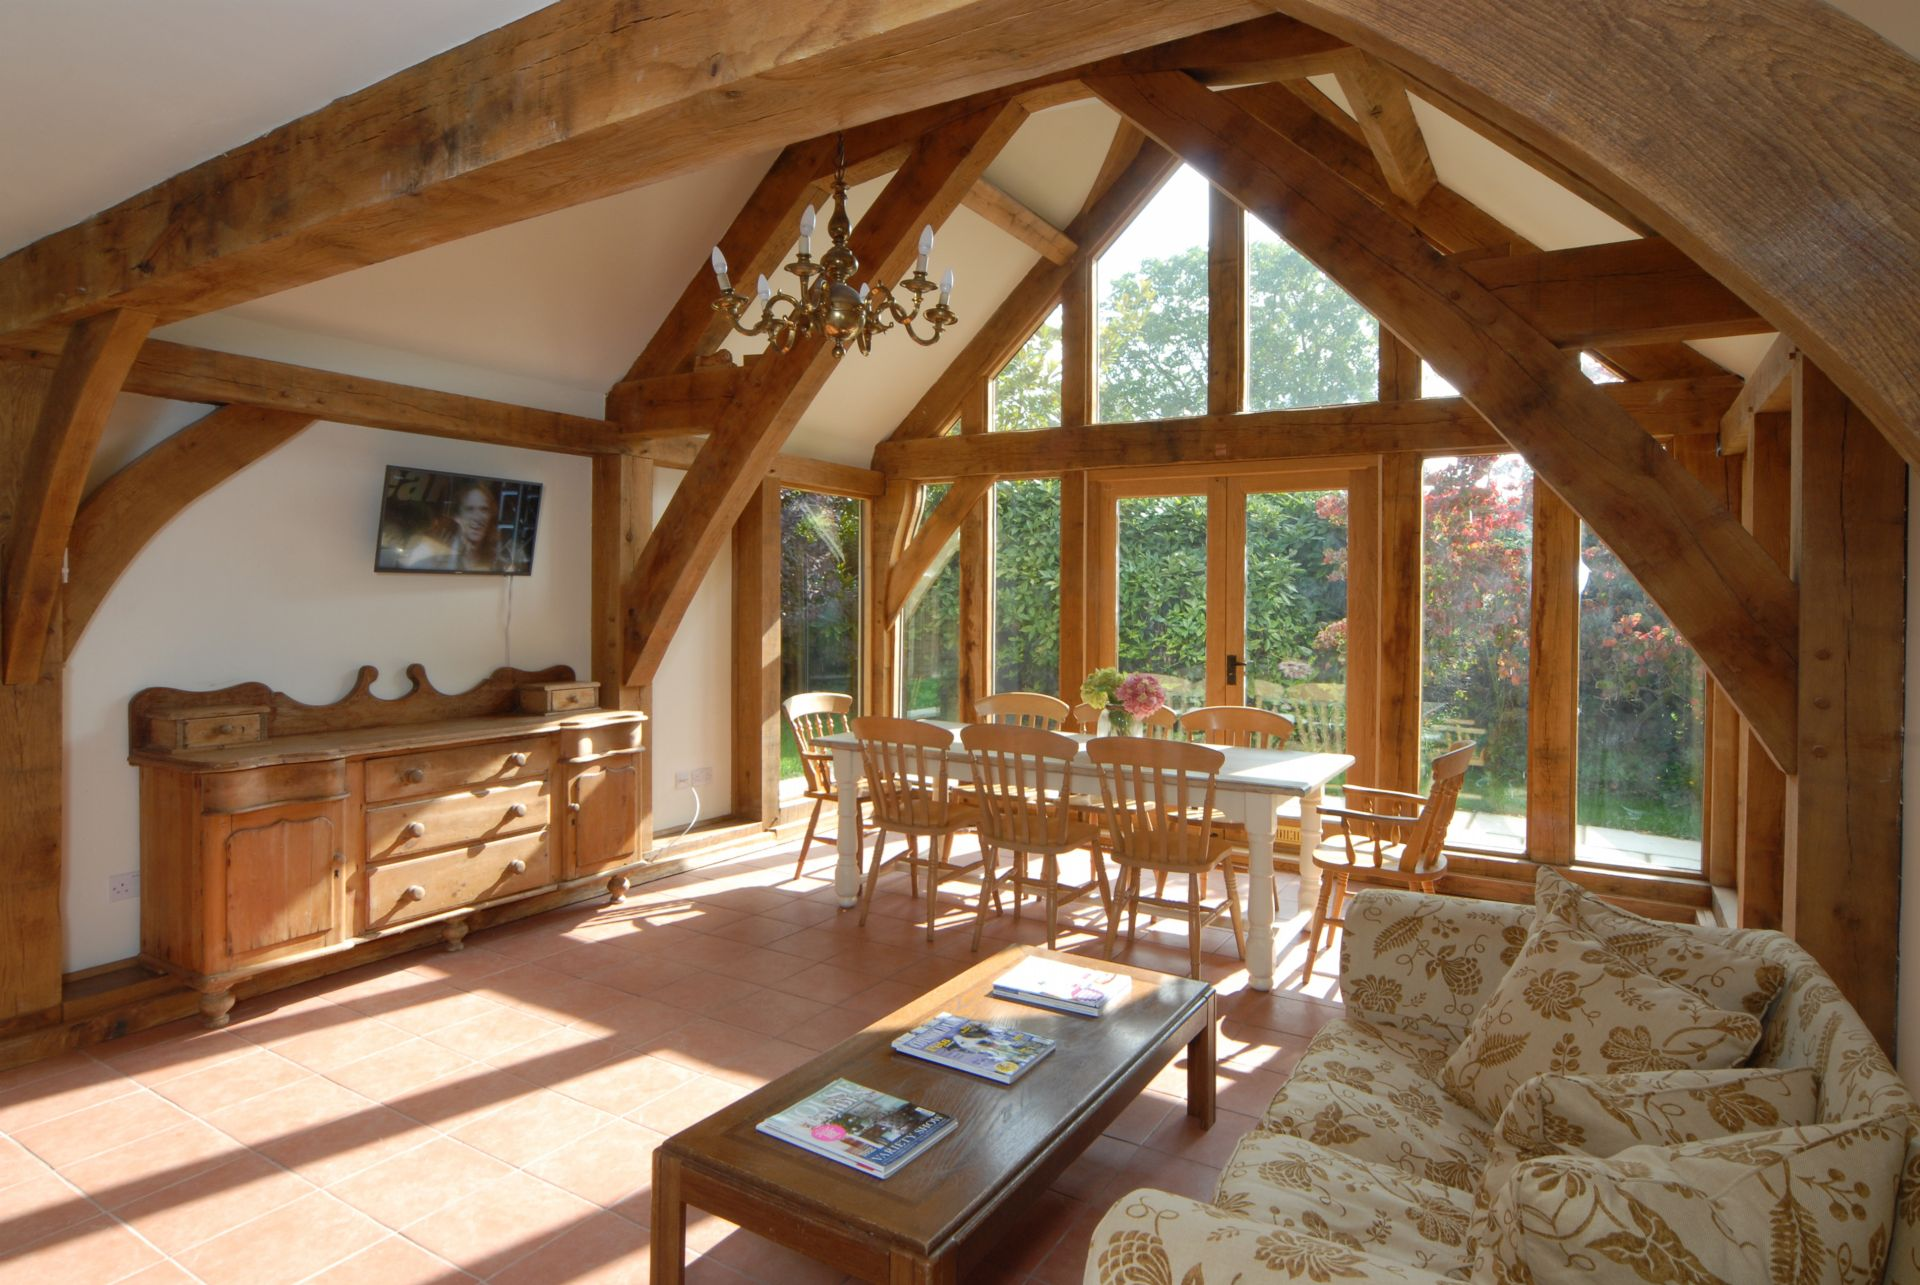 Hiron's Piece ground floor: impressive beams with full height windows in the dining area